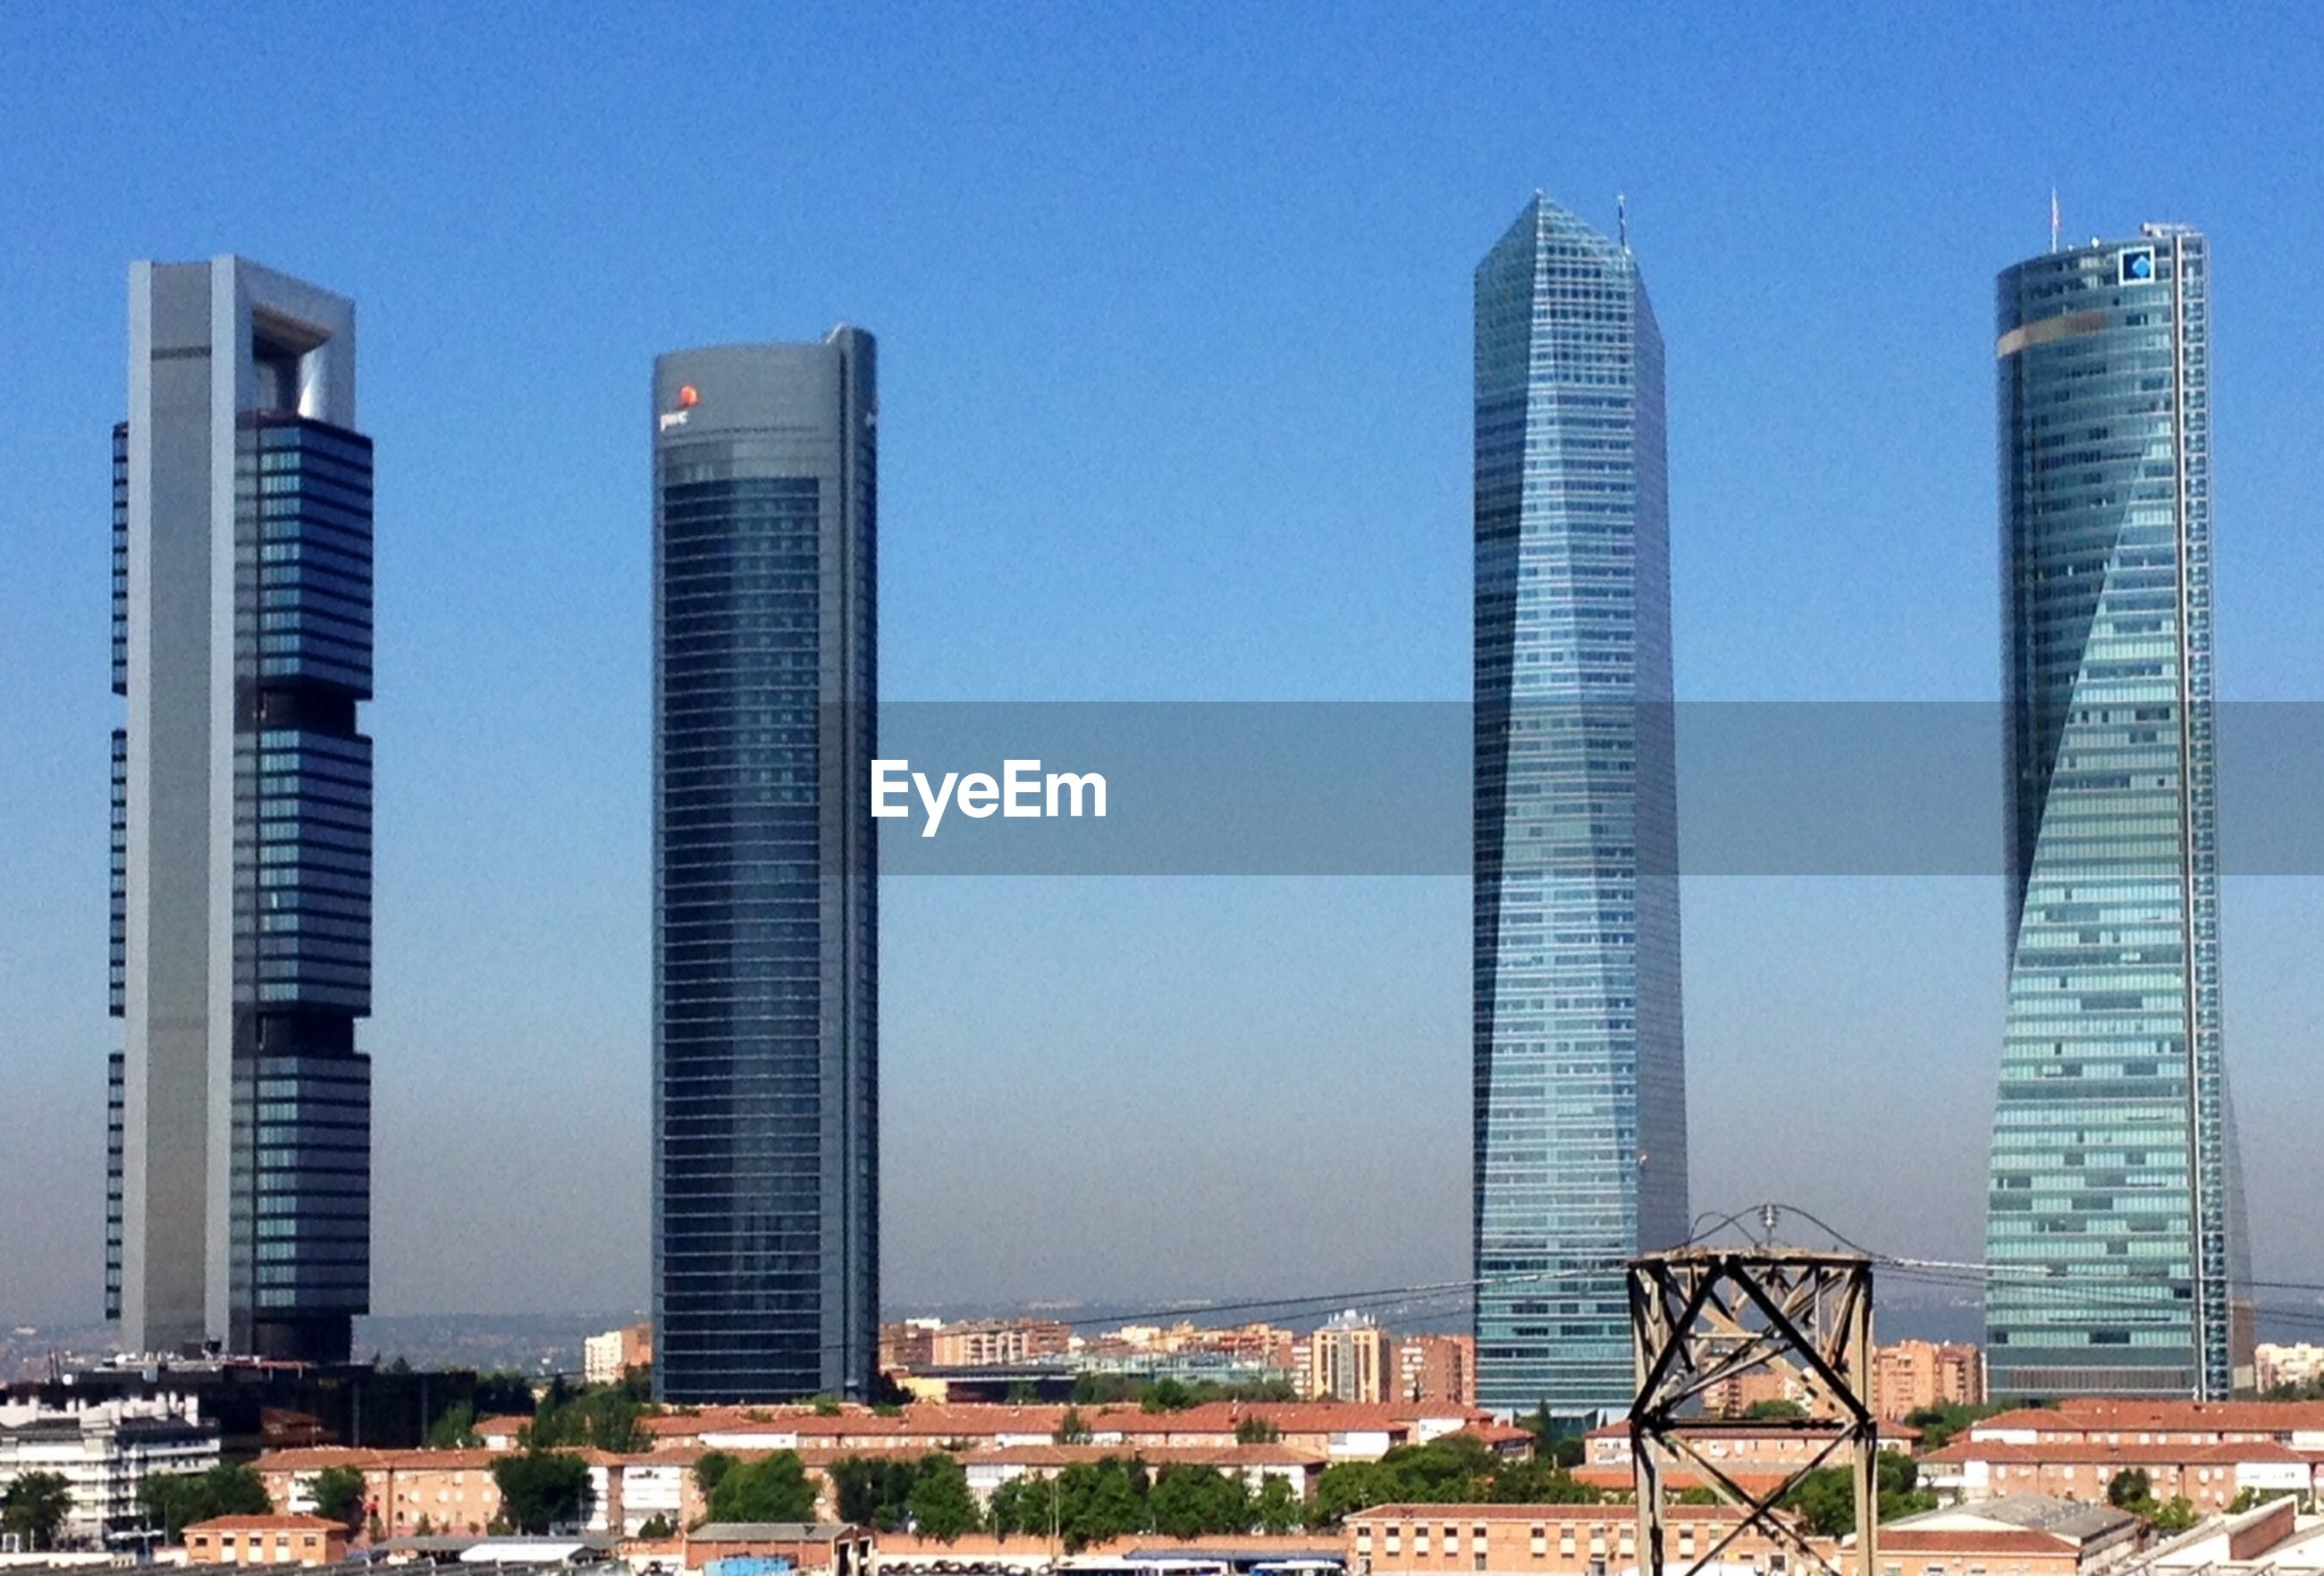 building exterior, architecture, city, skyscraper, built structure, modern, tall - high, office building, cityscape, tower, clear sky, urban skyline, financial district, building, blue, development, tall, low angle view, city life, sky